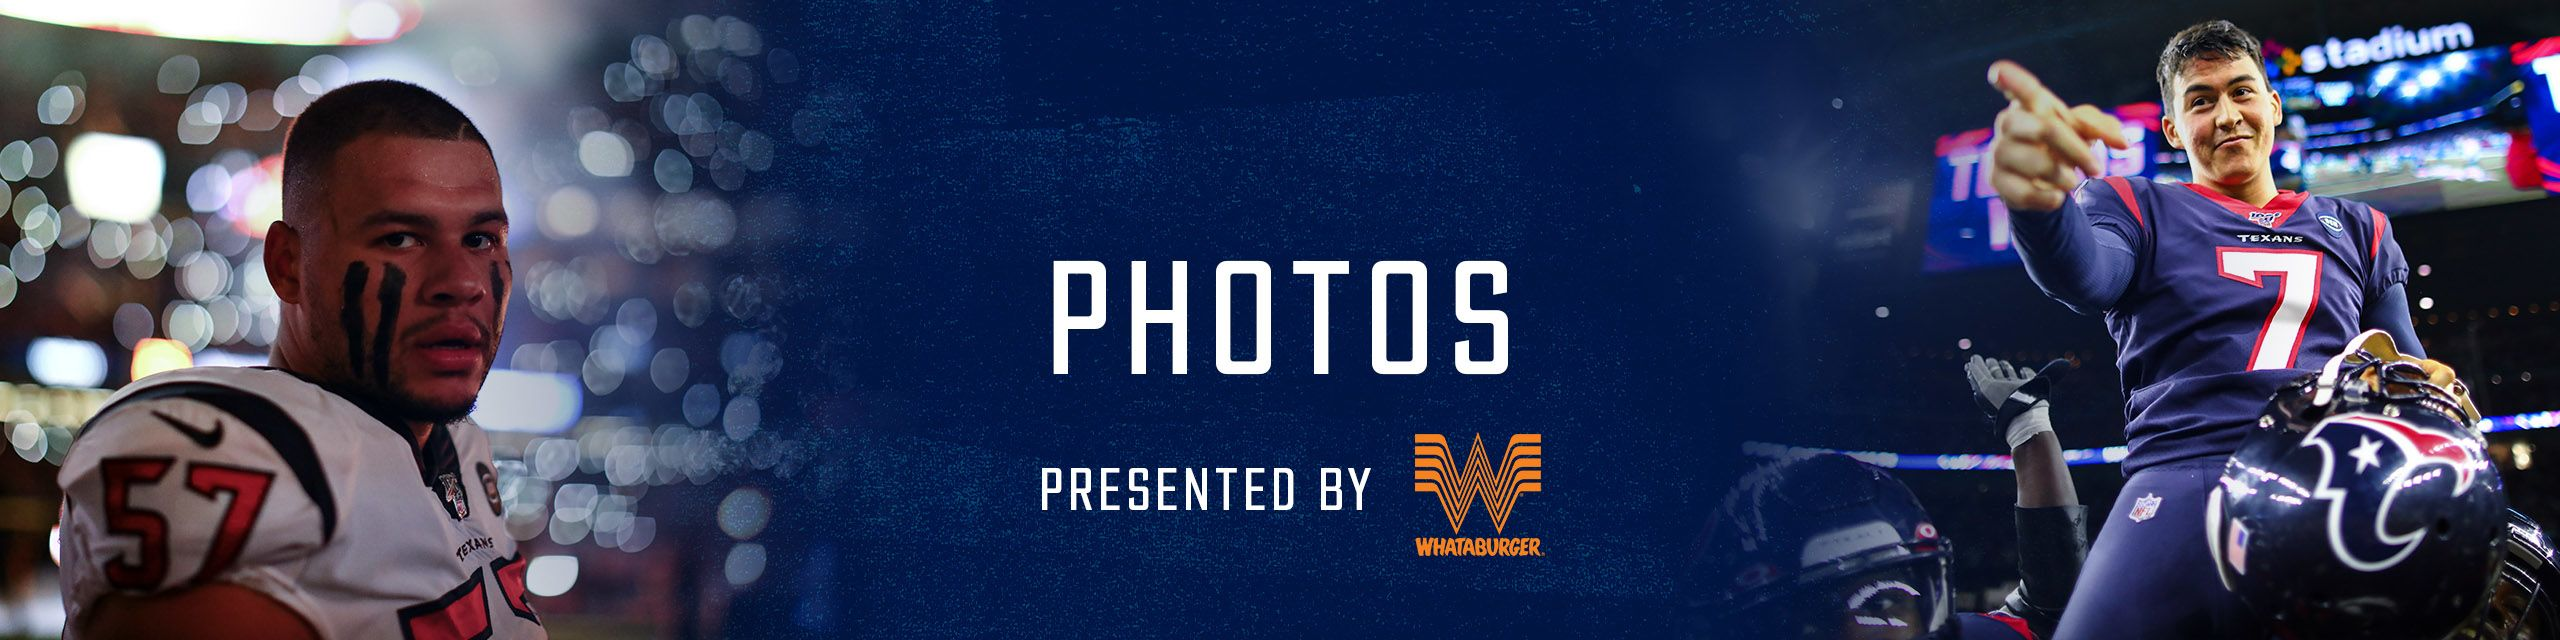 Photos presented by Whataburger